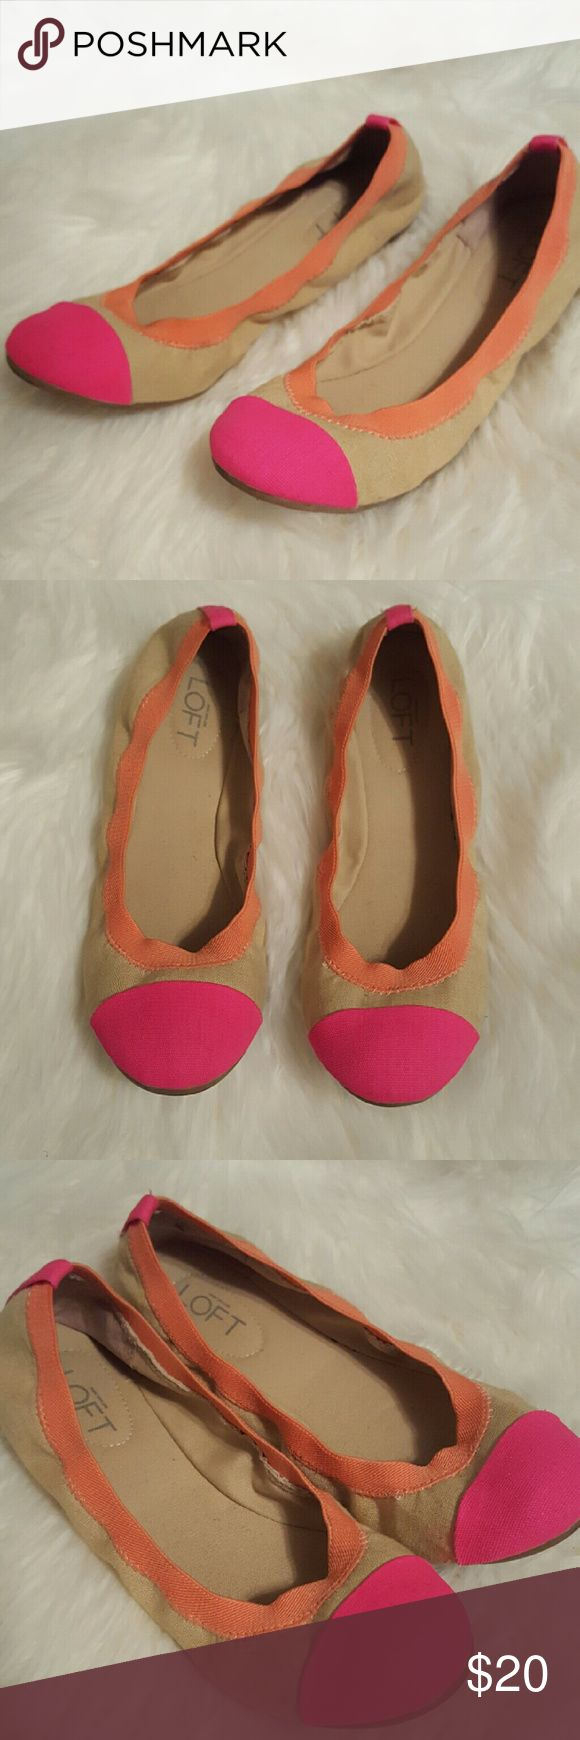 """Loft Colorblock Flats These flats have been gently lived in. They were only worn a few times and remain in great condition with minor sign of wear. They are comfortable and definitely have a """"wow!"""" Factor. LOFT Shoes Flats & Loafers"""